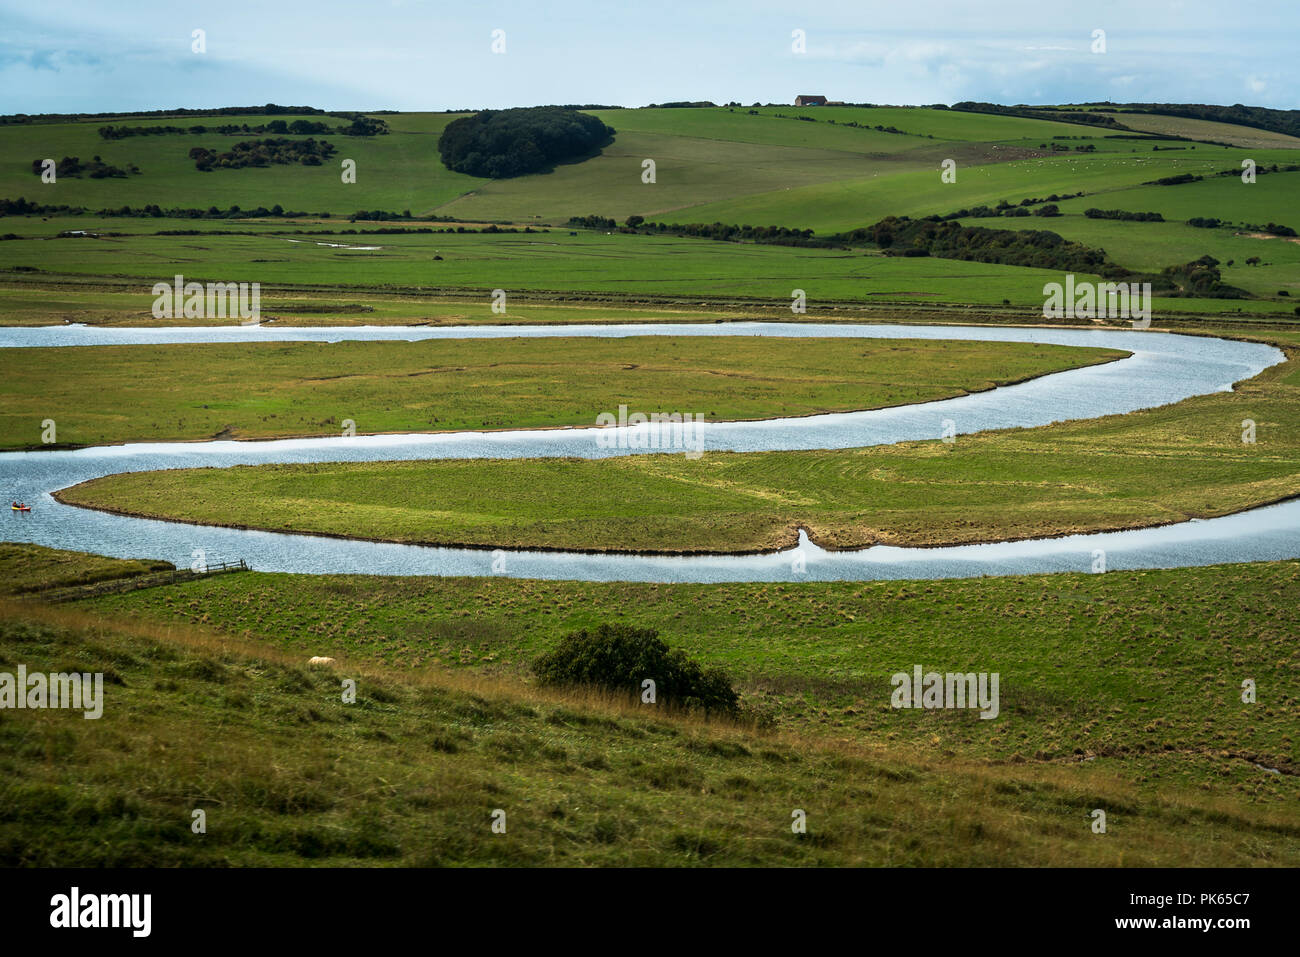 Cuckmere Haven, a meandering river forming several oxbow lakes, between Seaford and Eastbourne, East Sussex, England, UK - Stock Image